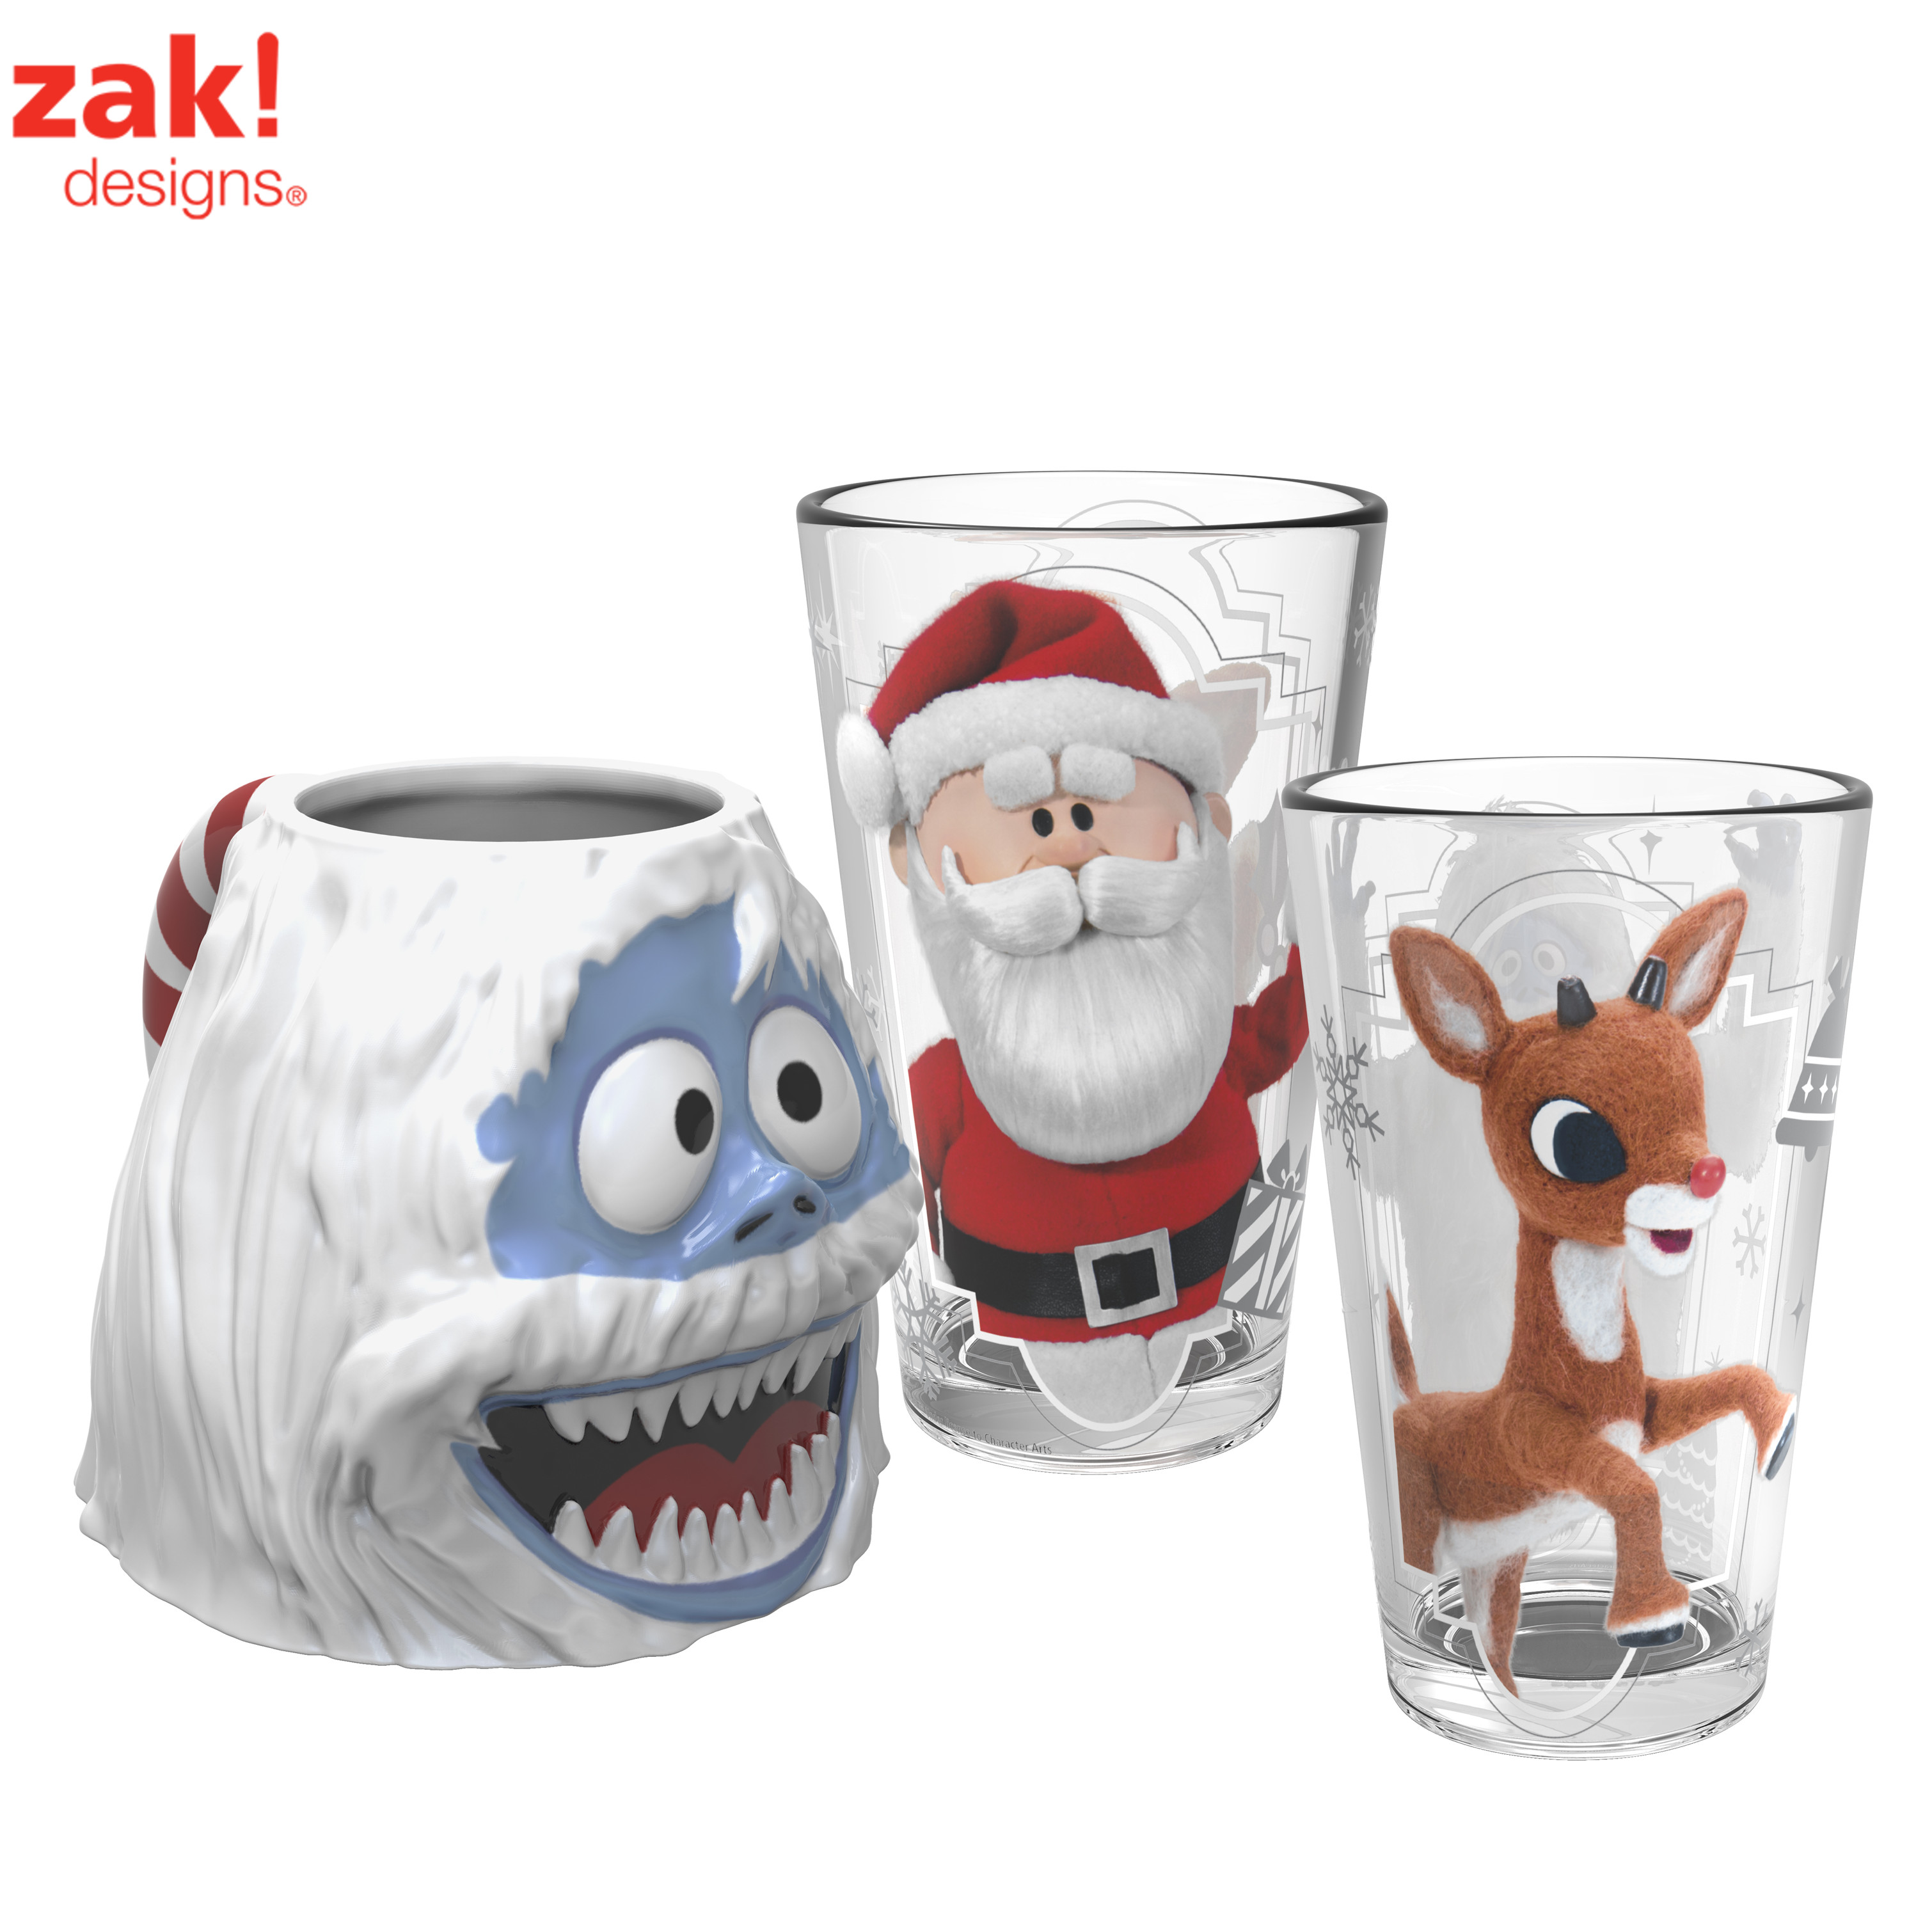 Christmas Collectibles Rudolph the Red Nosed Reindeer Coffee Mug & Pint Glasses